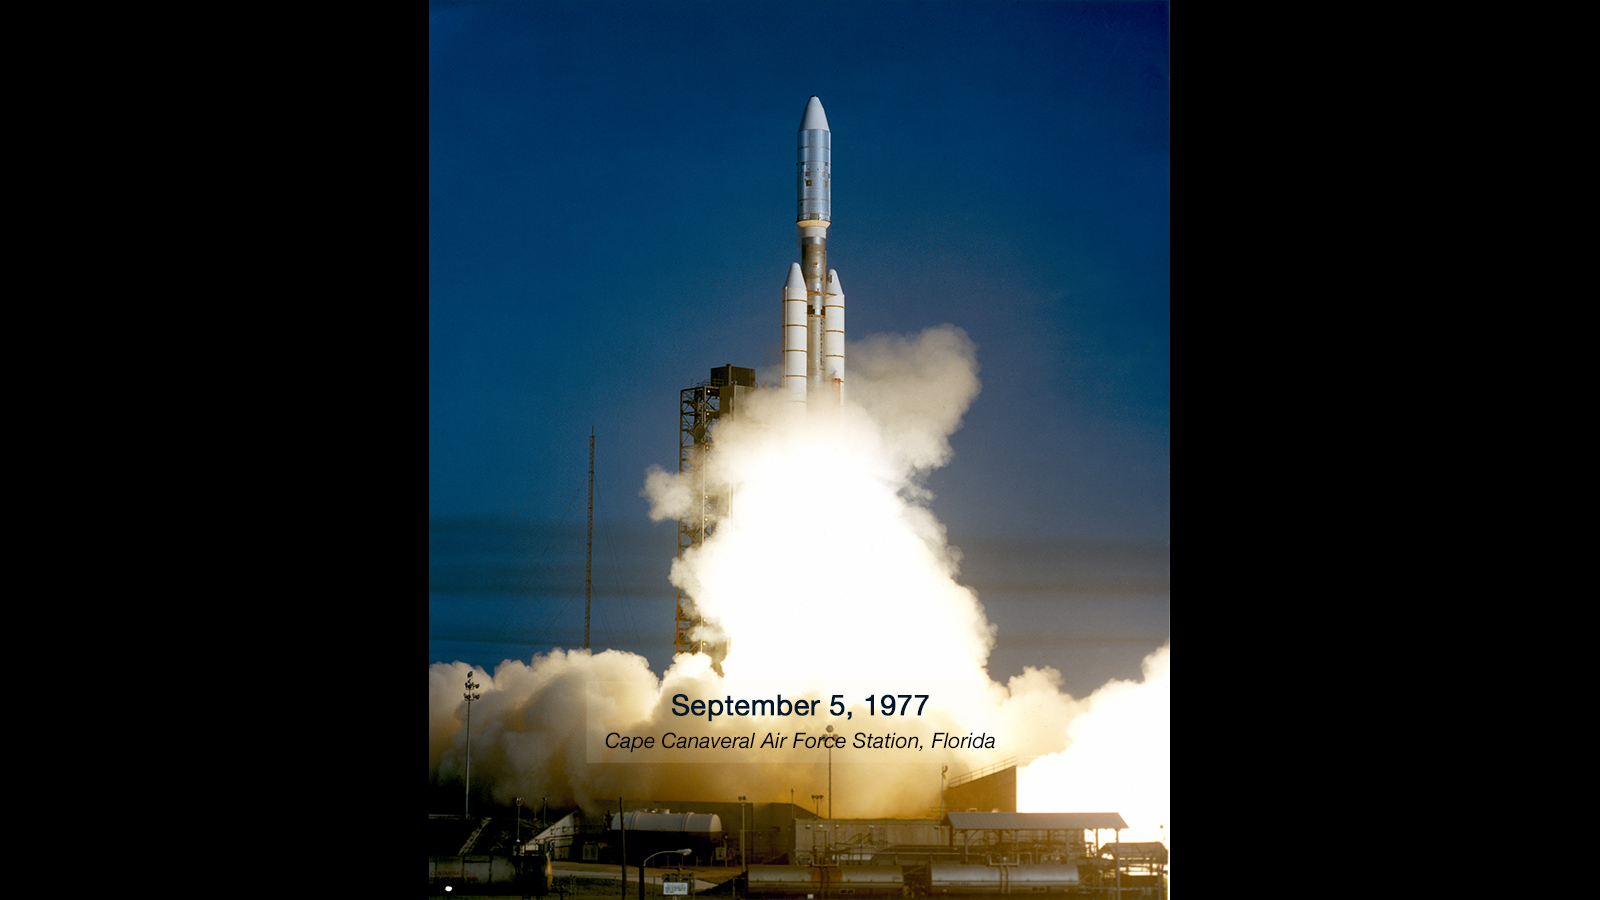 slide 2 - Launch of Voyager 1